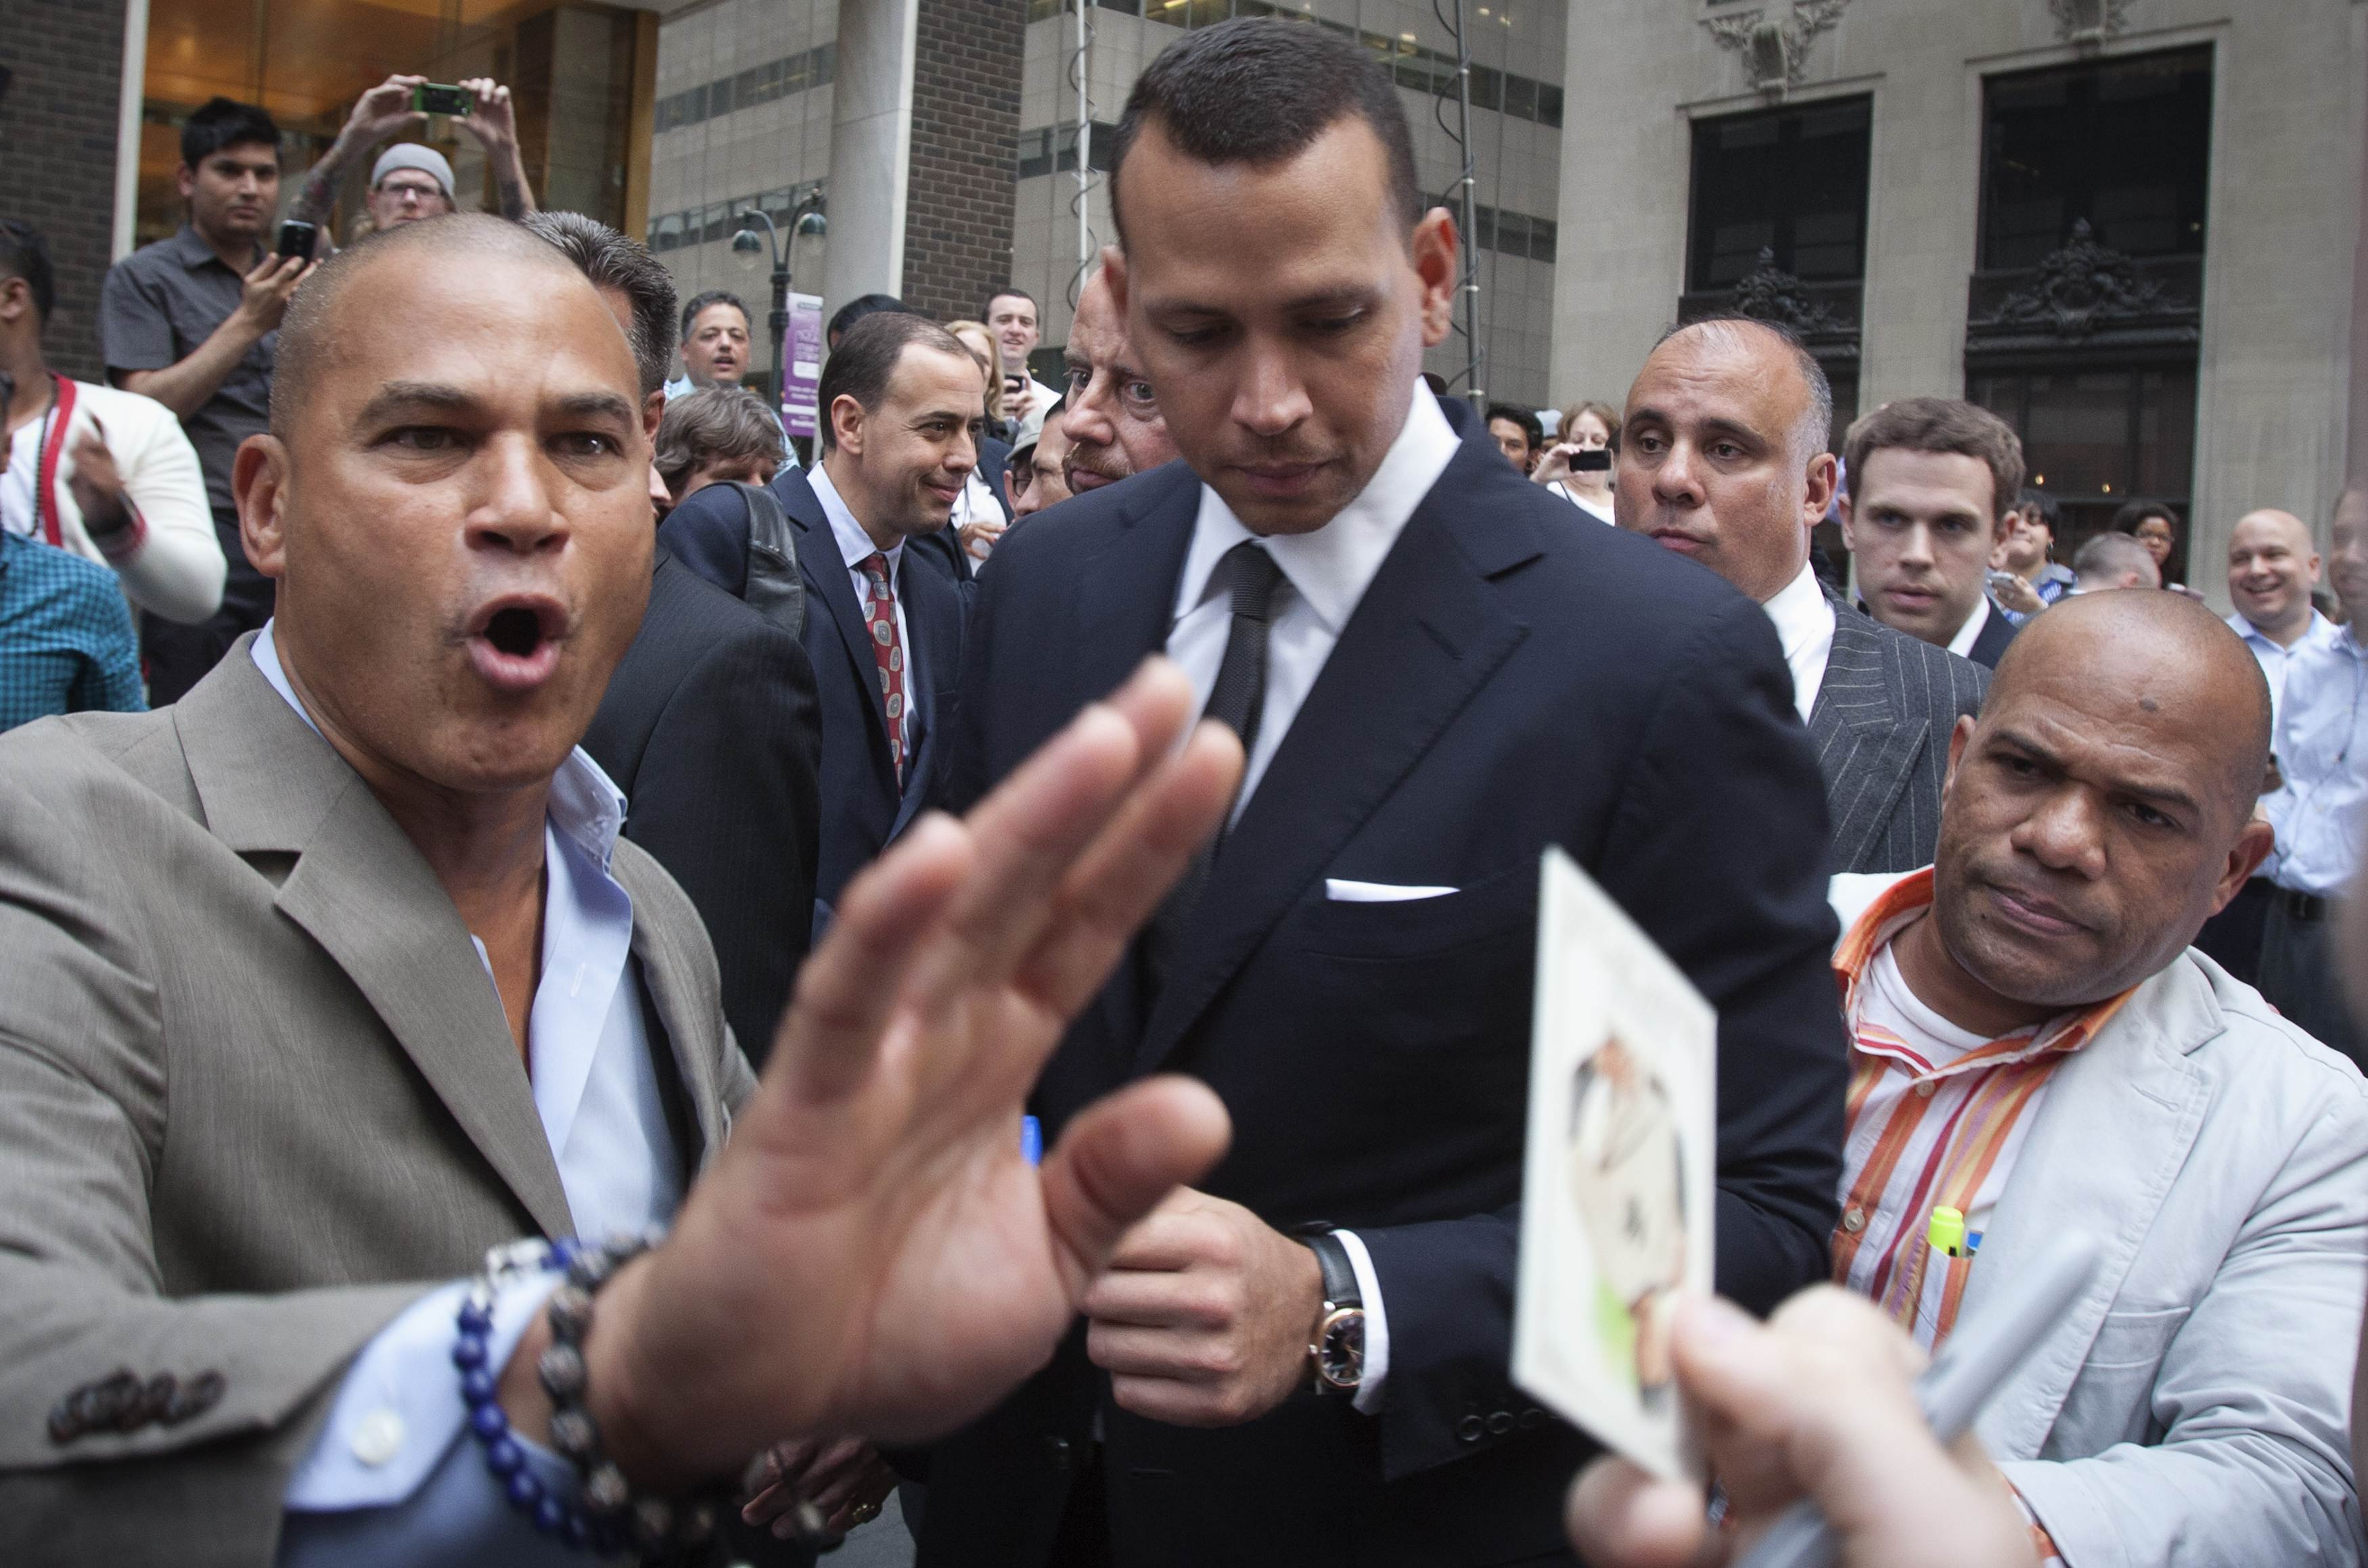 Alex Rodriguez (C) is surrounded by supporters